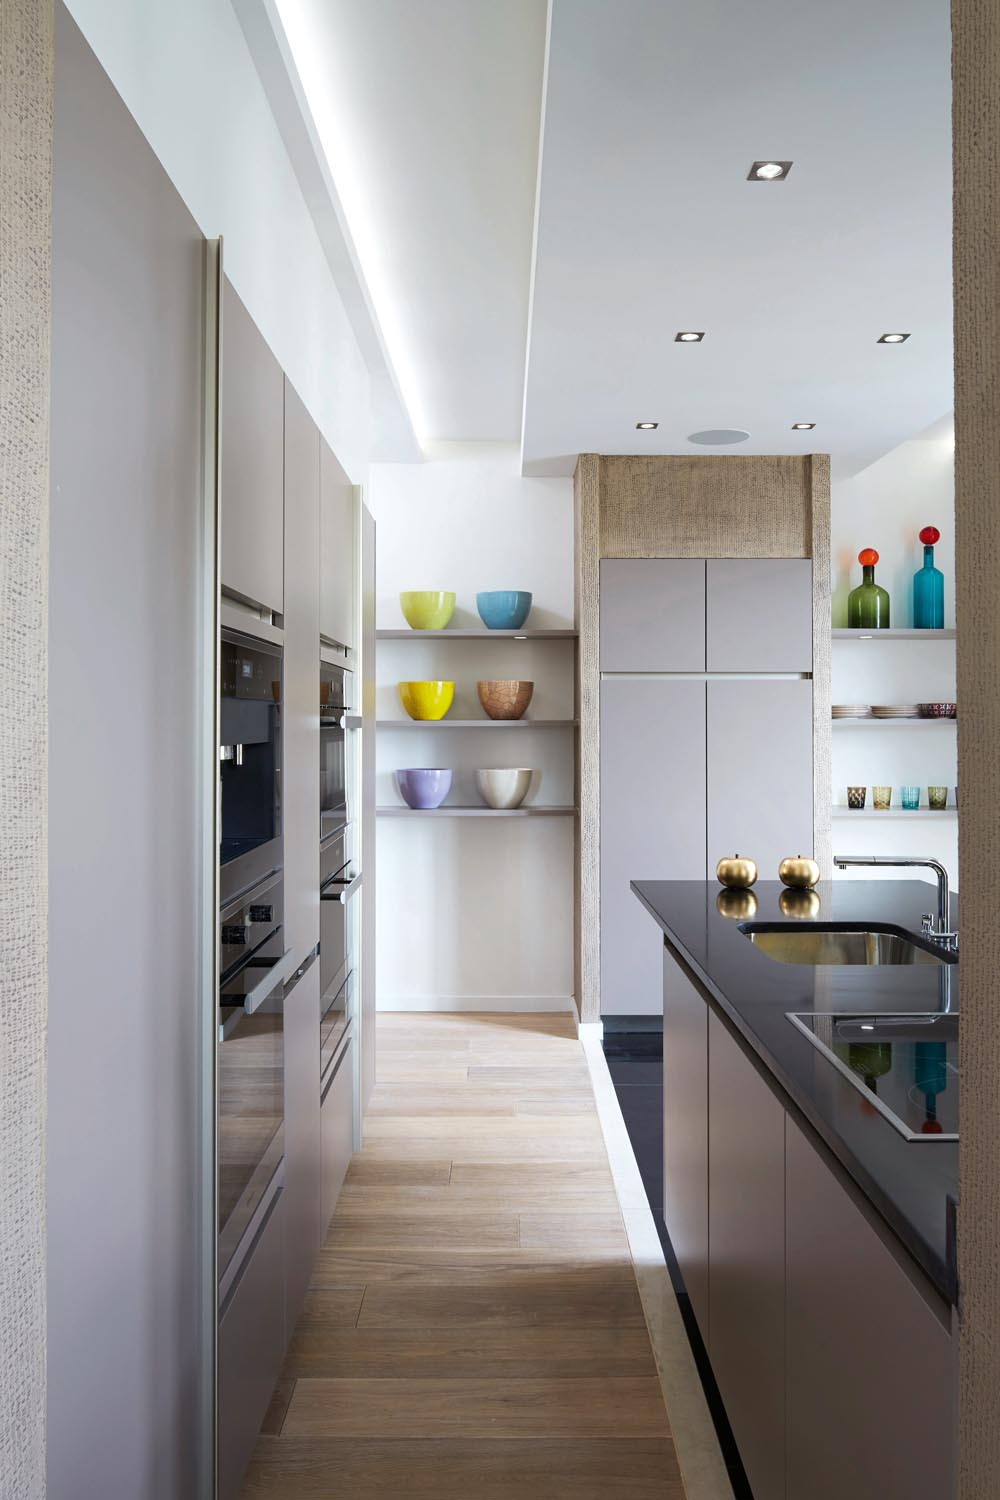 A generous island benchtop provides ample space for cooking